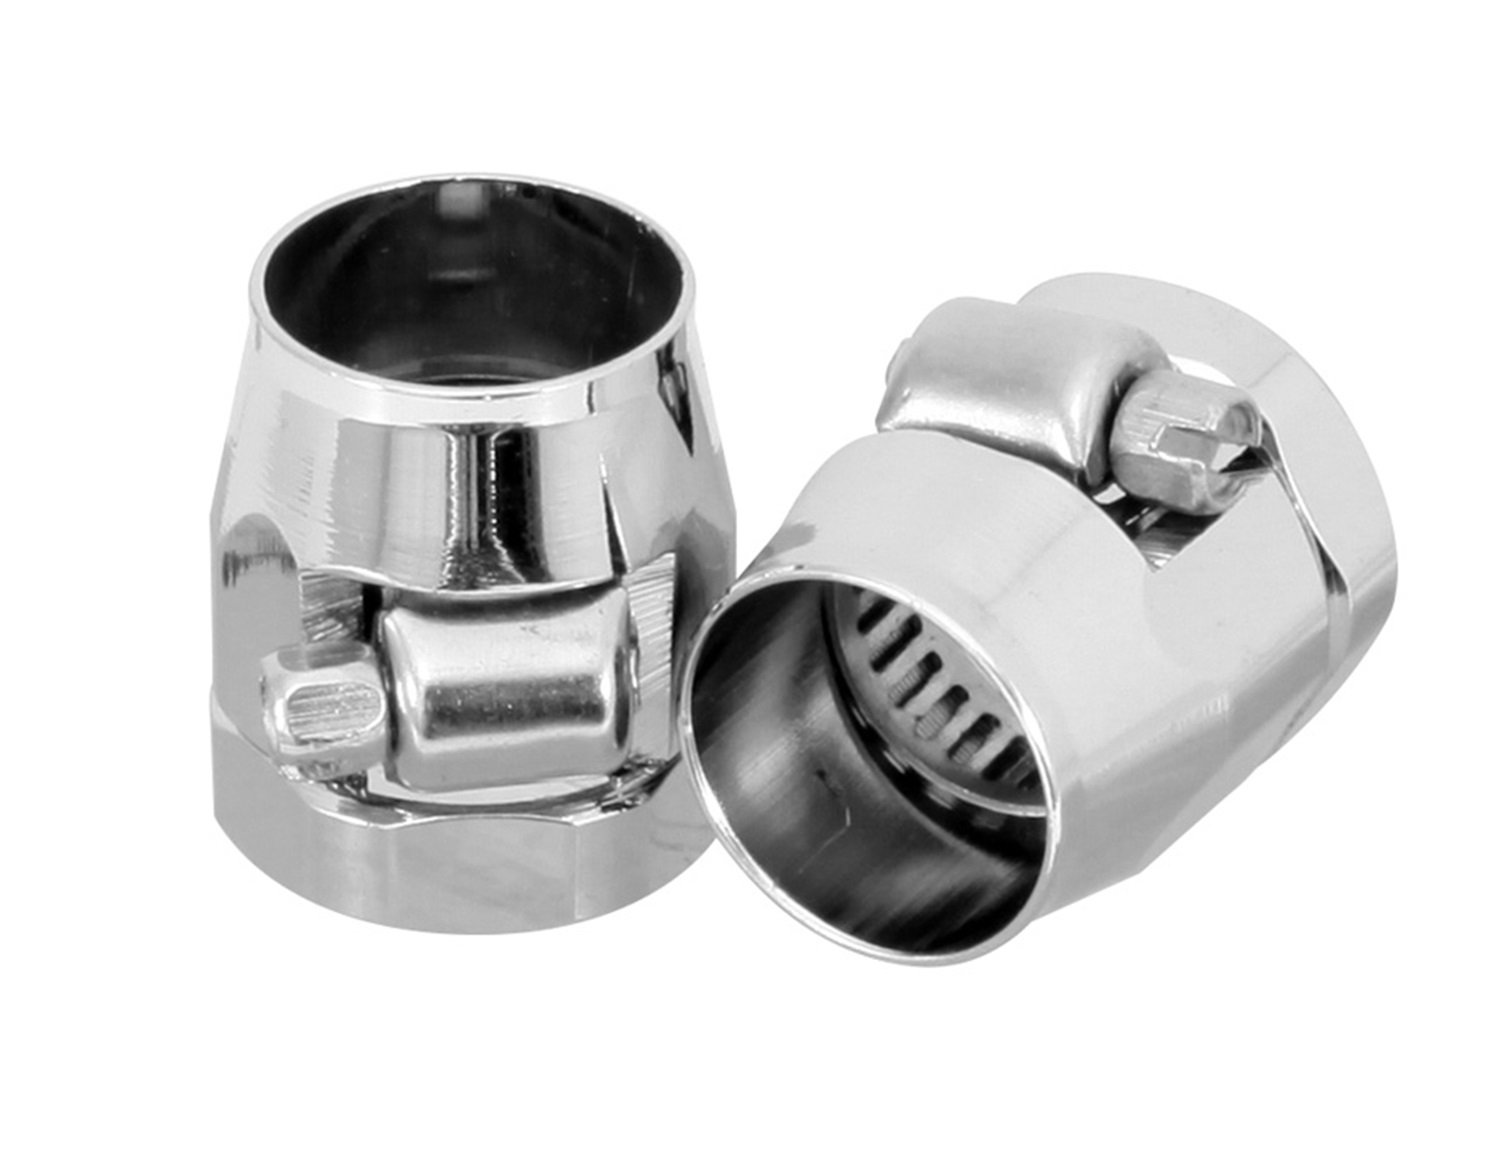 Spectre Performance 2268 Magnaclamp 3/8' Fuel Line Fitting SPE-2268